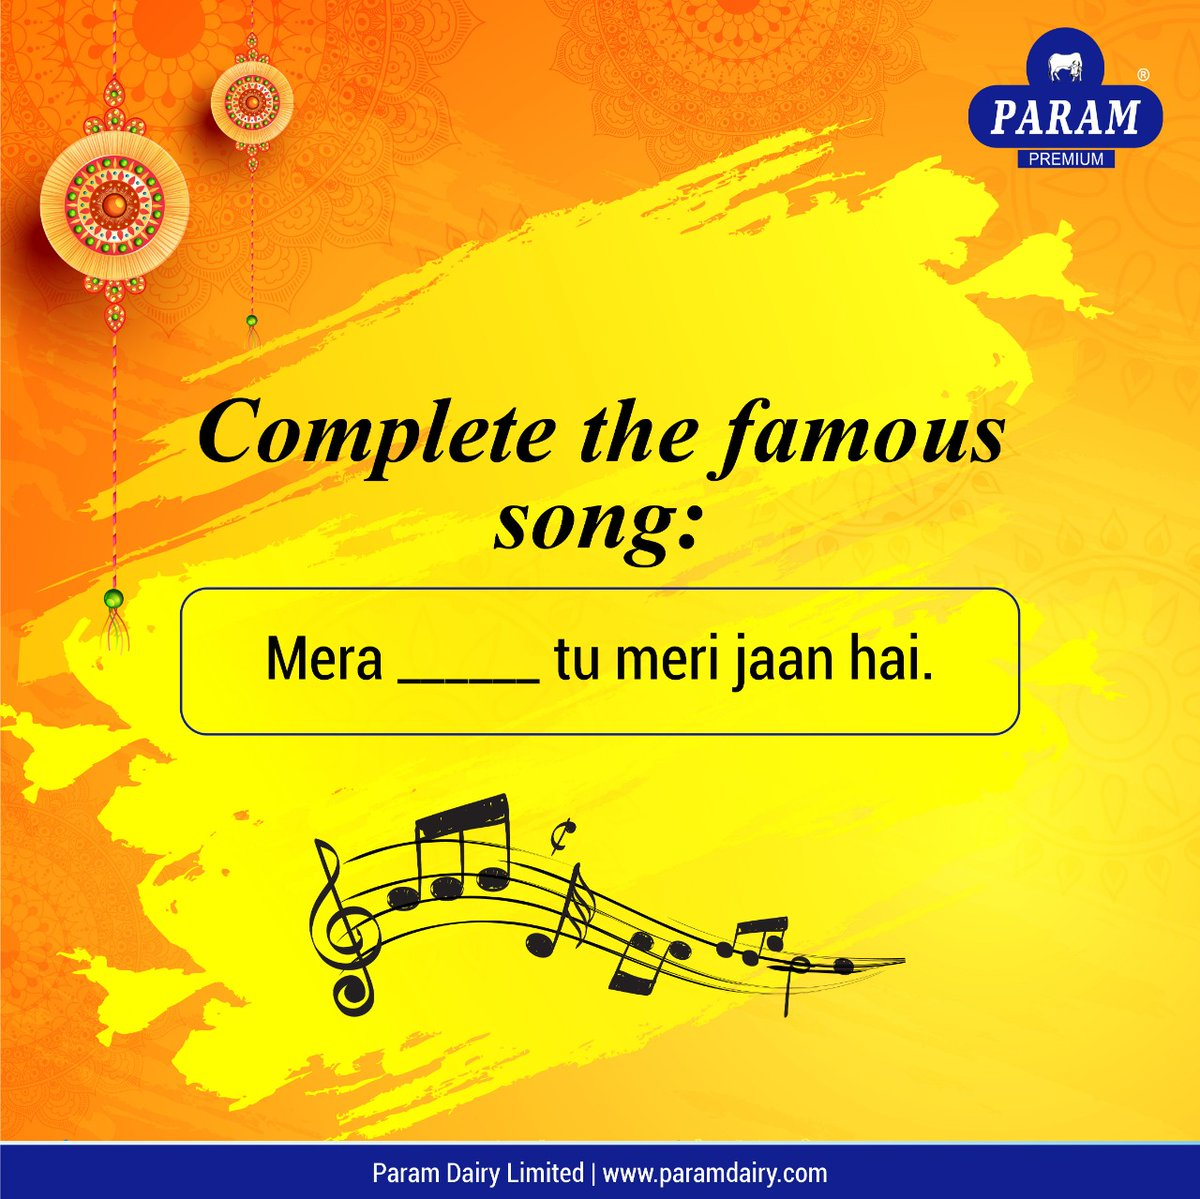 In this Raksha Bandhan #Contest, we are trying to keep our followers #entertained and #engaged with a small #Activity. #Complete the famous #song and #comment your answer. #paramdairyindia #ContestAlert #rakshabandhan #gifts #foodindustry #siblings #care #HealthyEating #gamepic.twitter.com/3uyeRQ2EmR